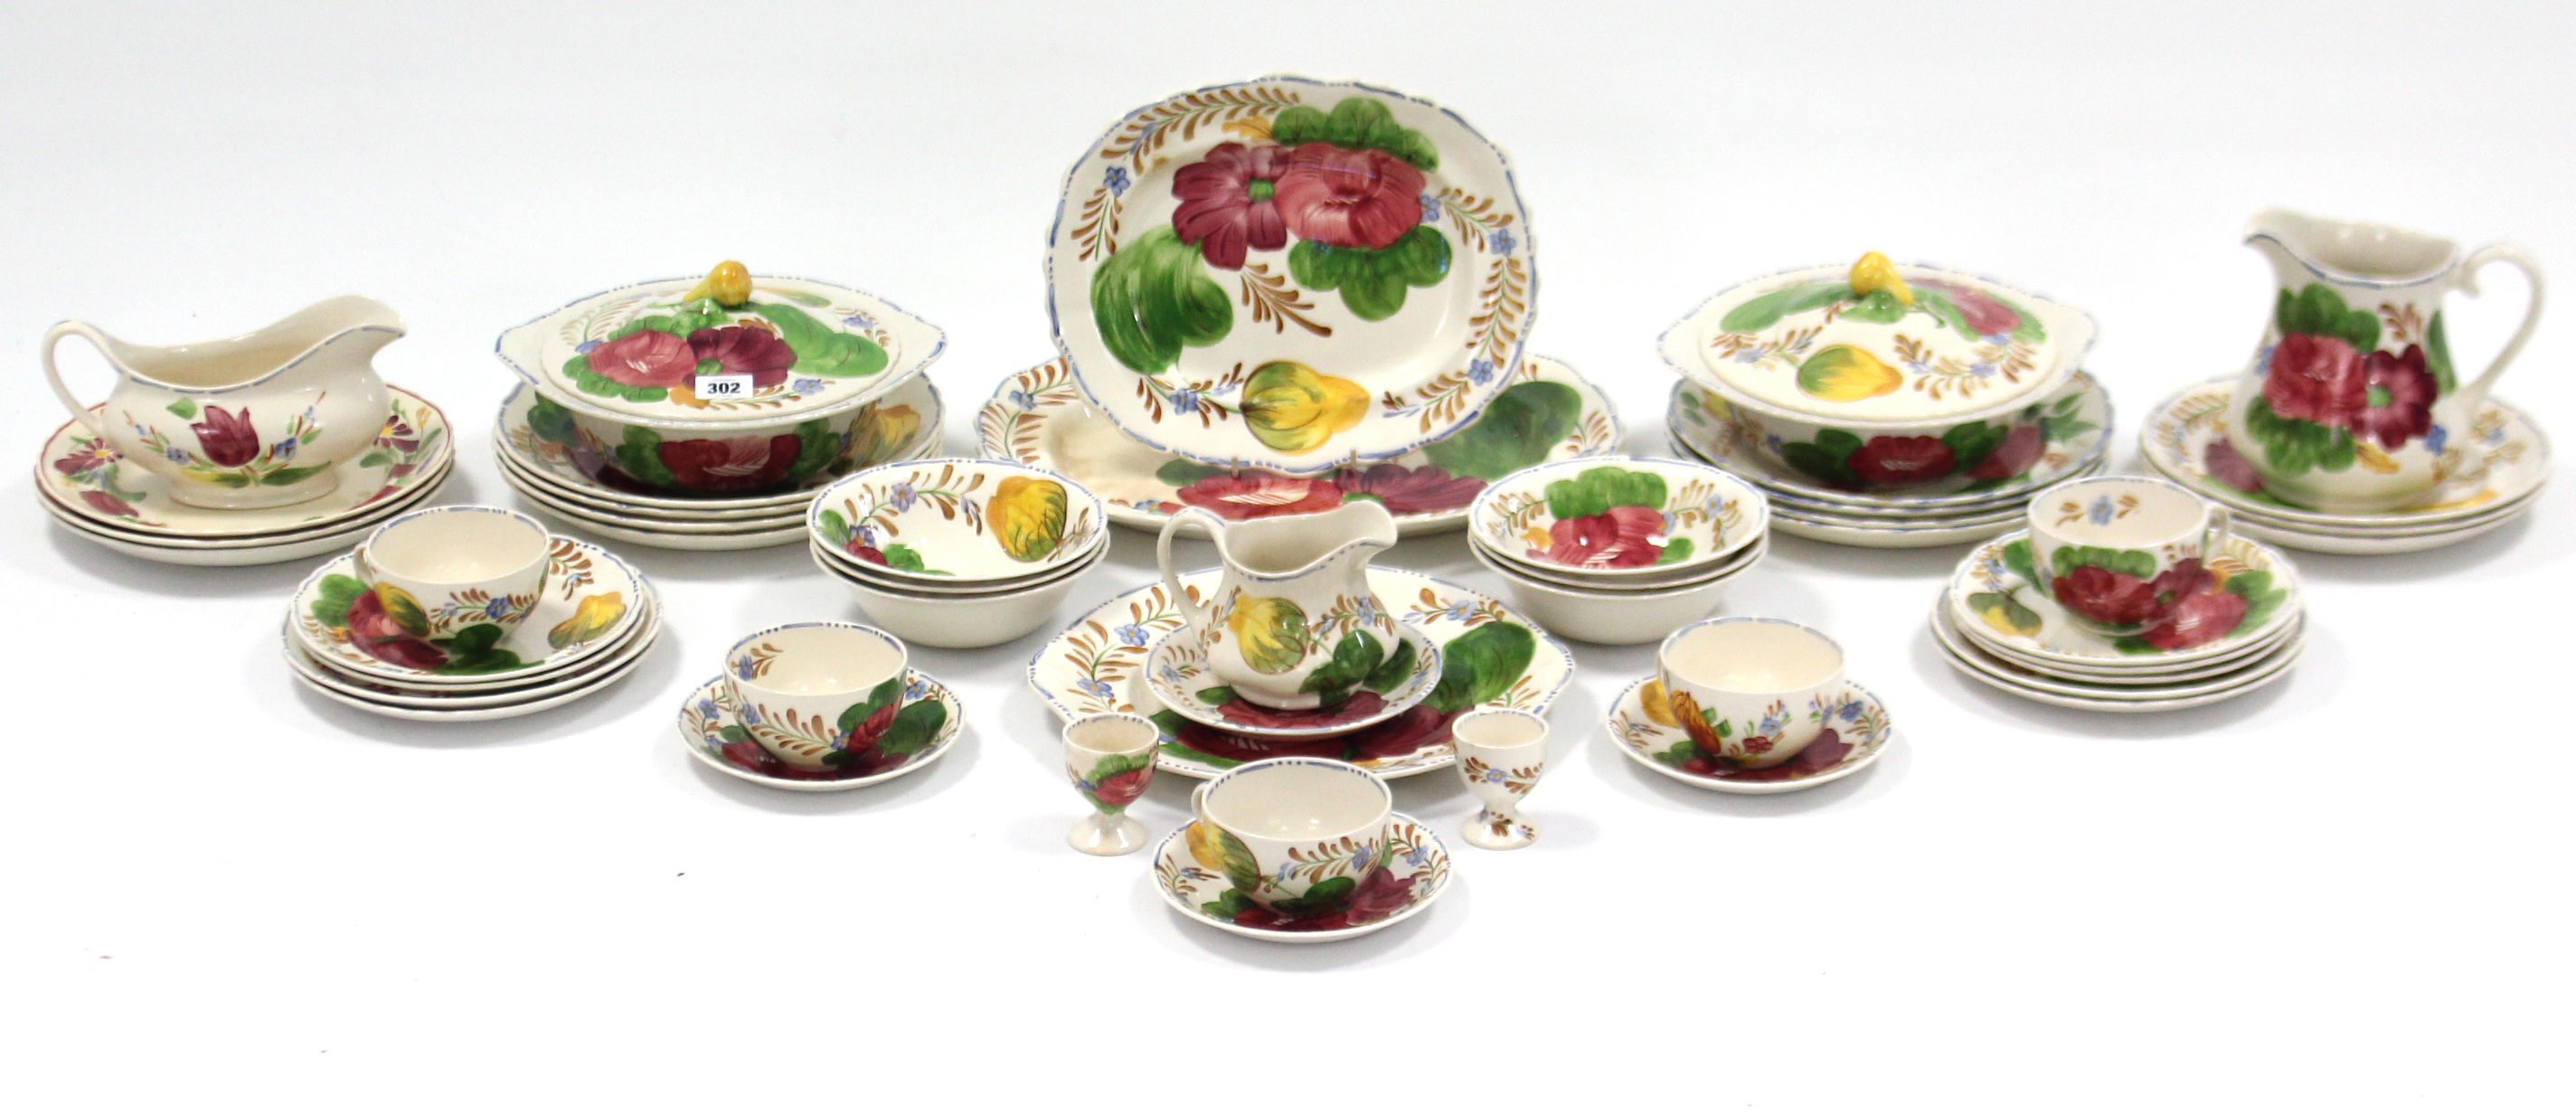 """Lot 302 - A Simpsons Solian ware pottery """"Belle Fiore"""" pattern forty eight piece part dinner & tea service,"""